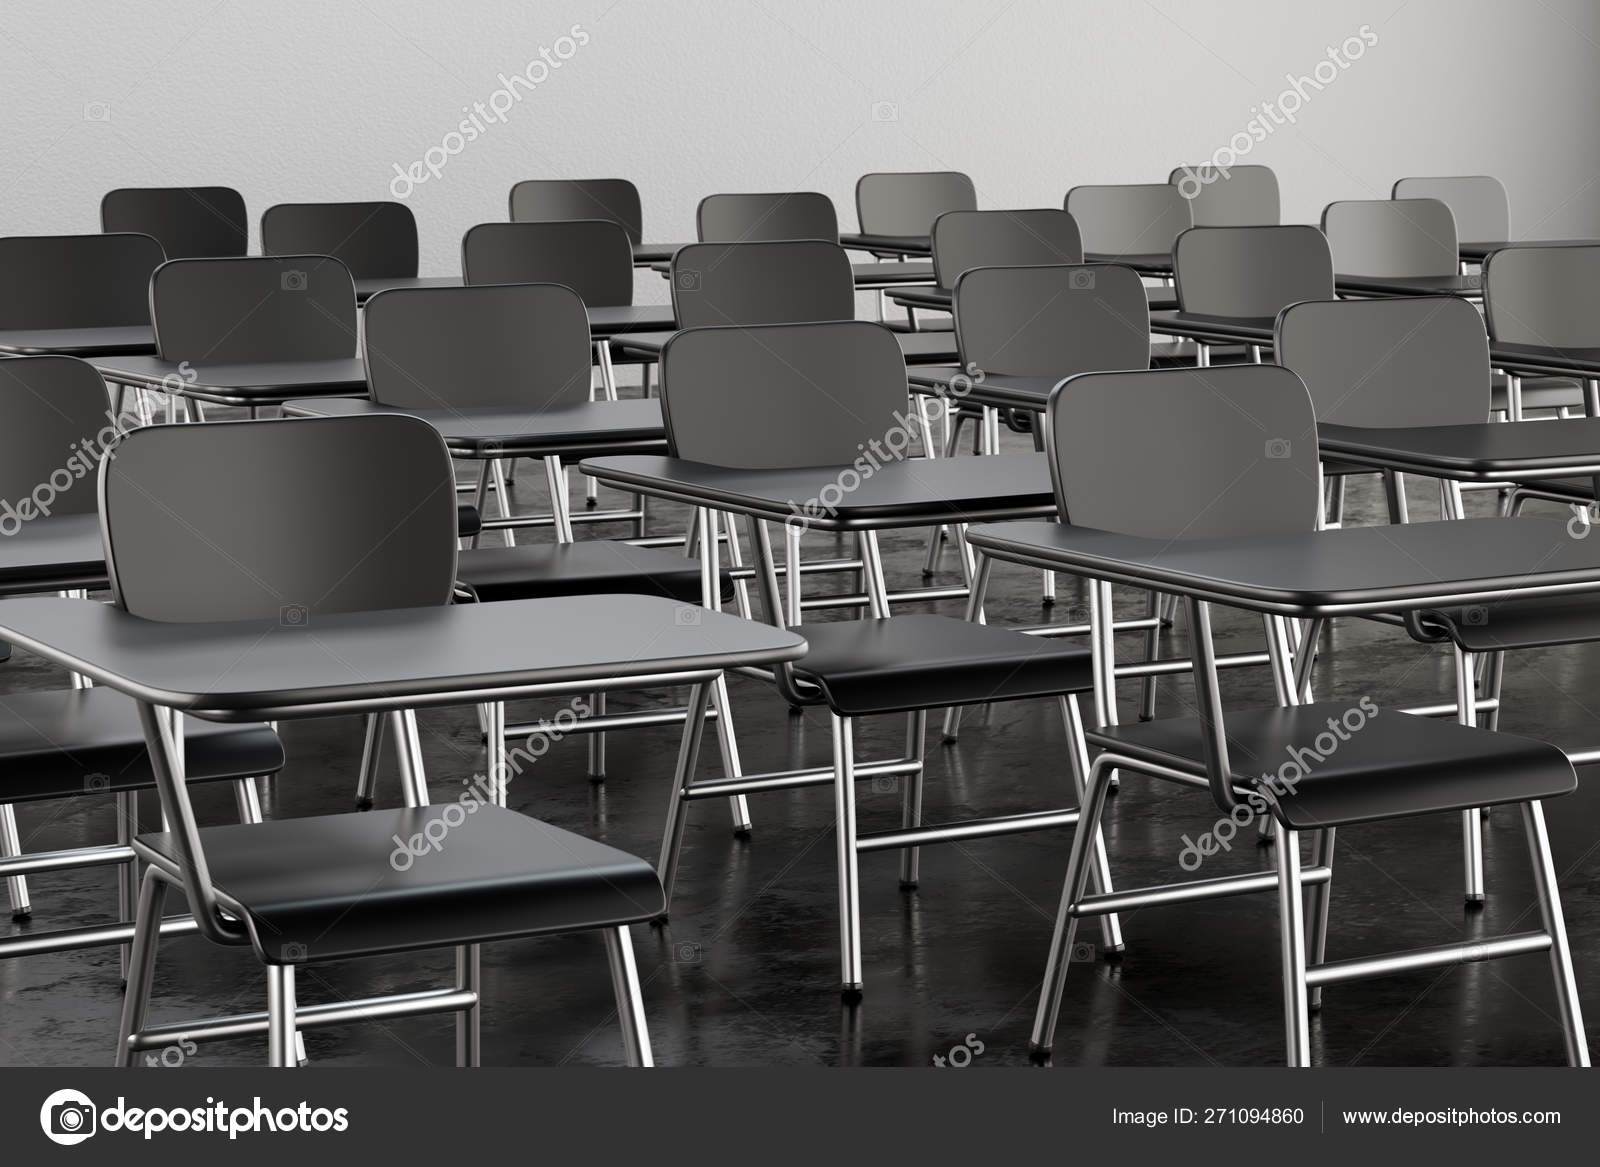 Marvelous Empty Desk Seats In Lecture Room Or School Classroom Stock Pdpeps Interior Chair Design Pdpepsorg